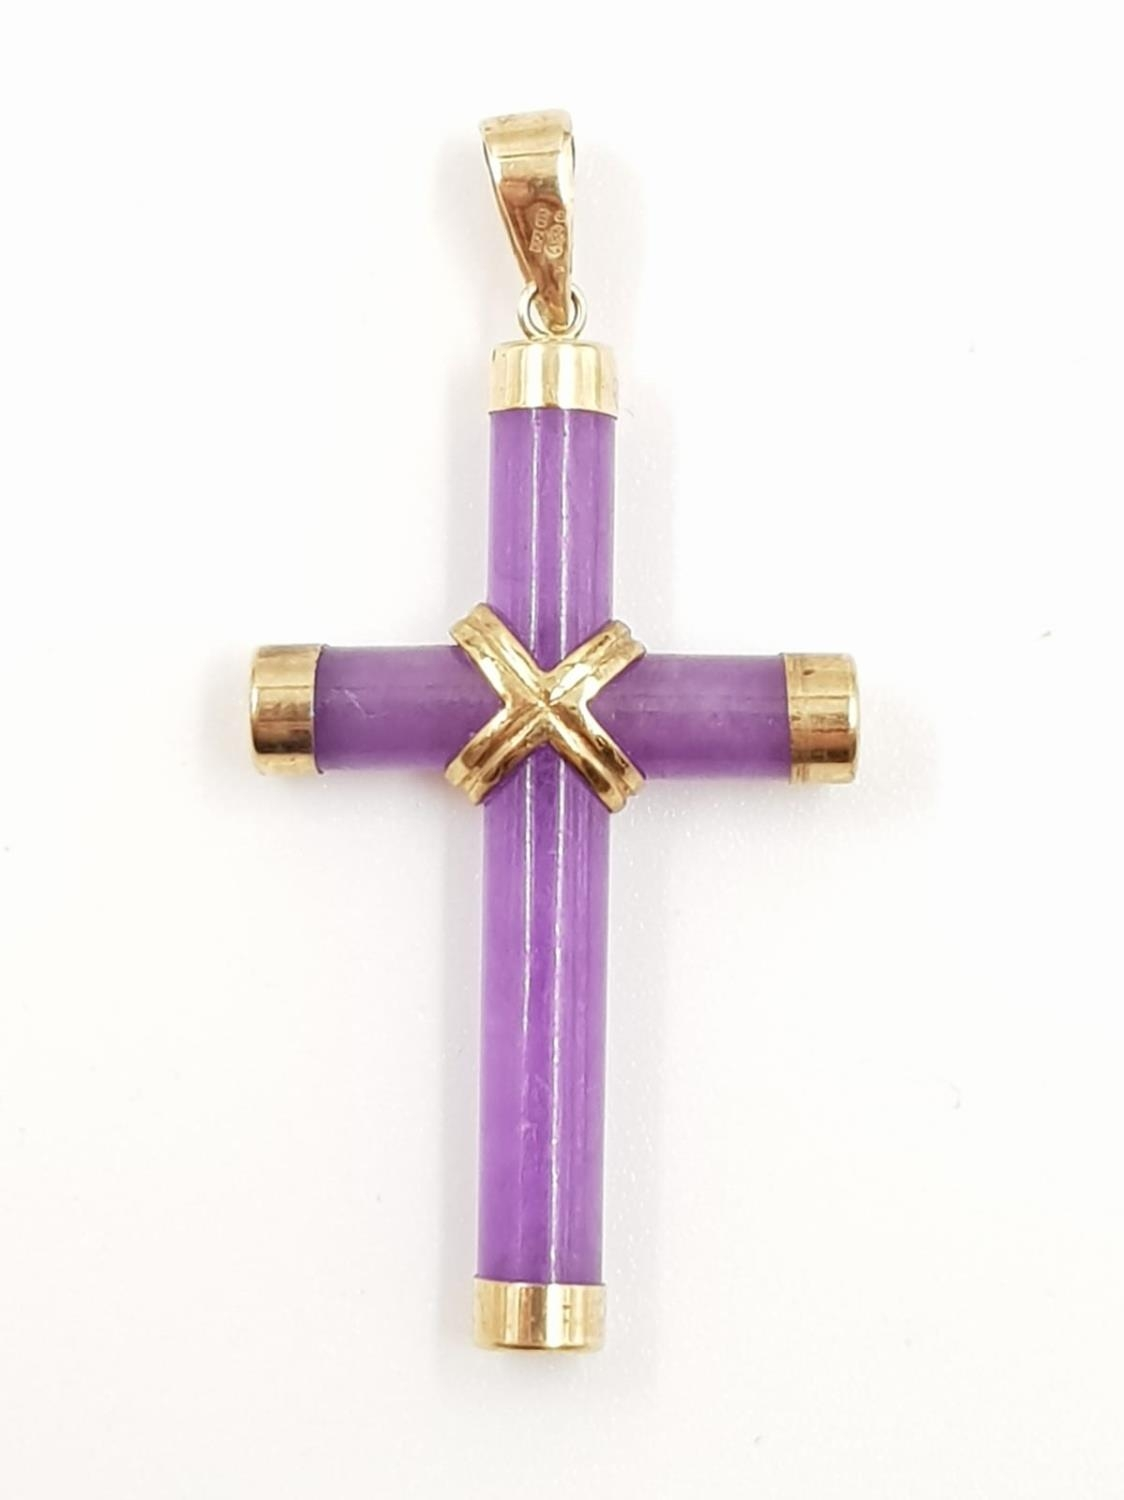 A lavender jade and 9ct gold cross. 2.28g total weight. - Image 2 of 2